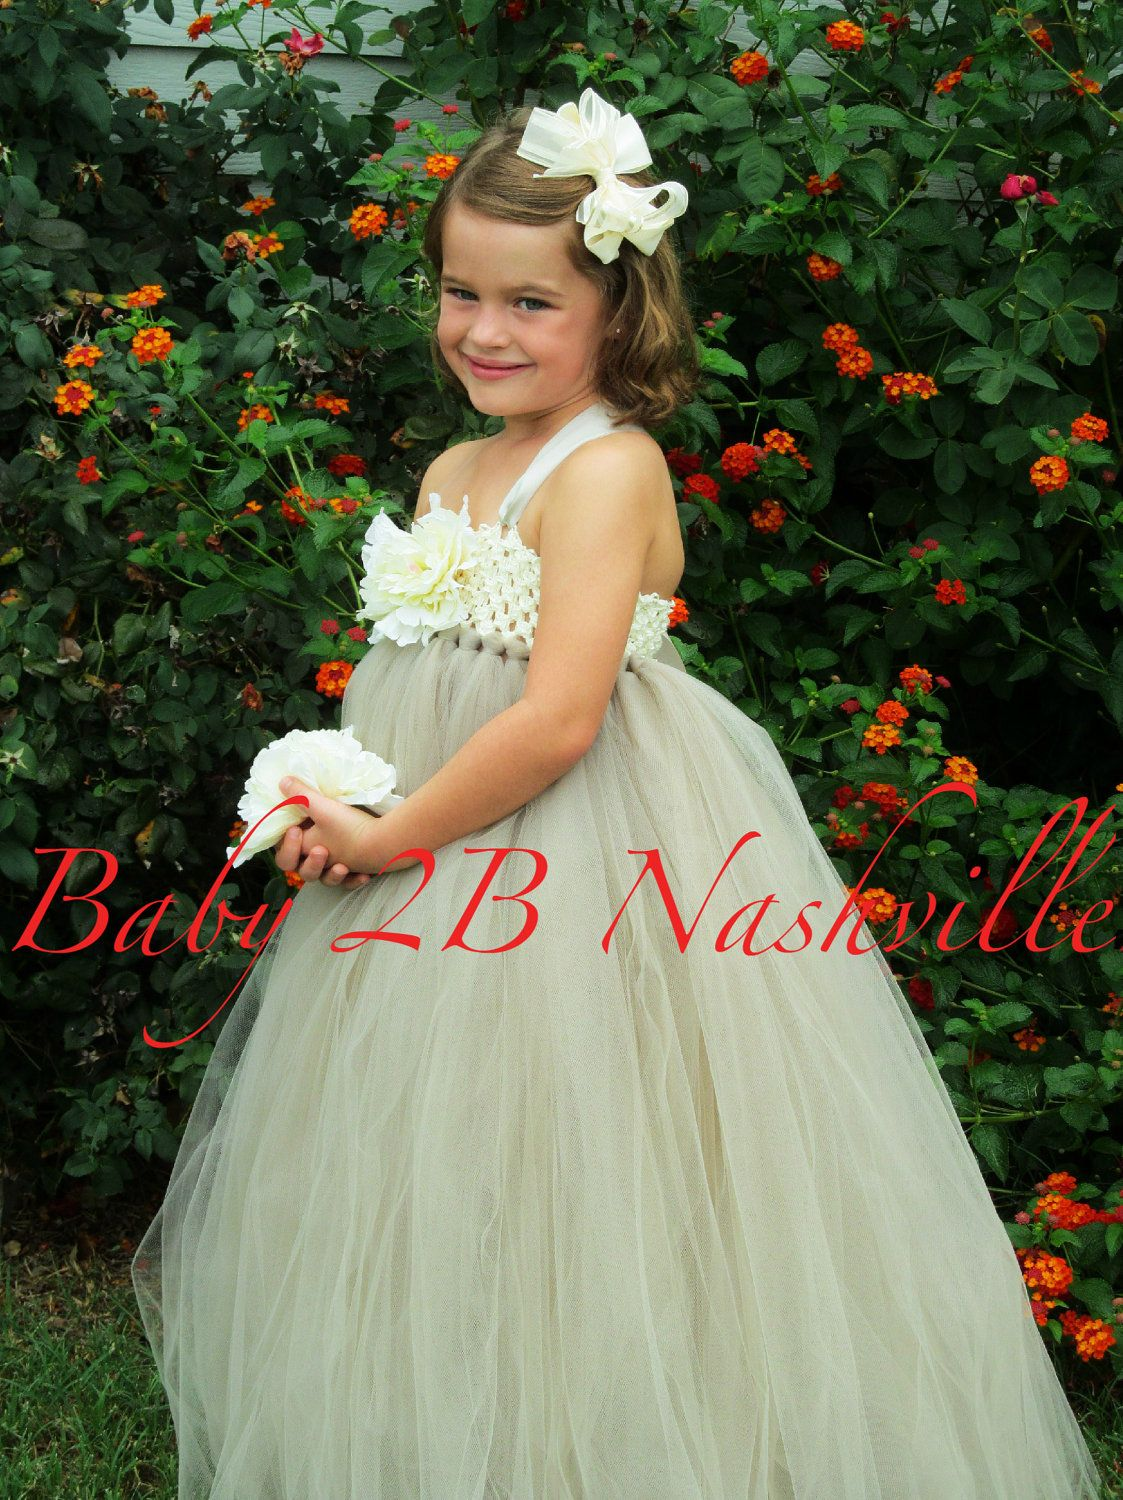 377a13b3a30 Flower Girl Dress in Ivory and Silver Girls 5-6T.  92.00